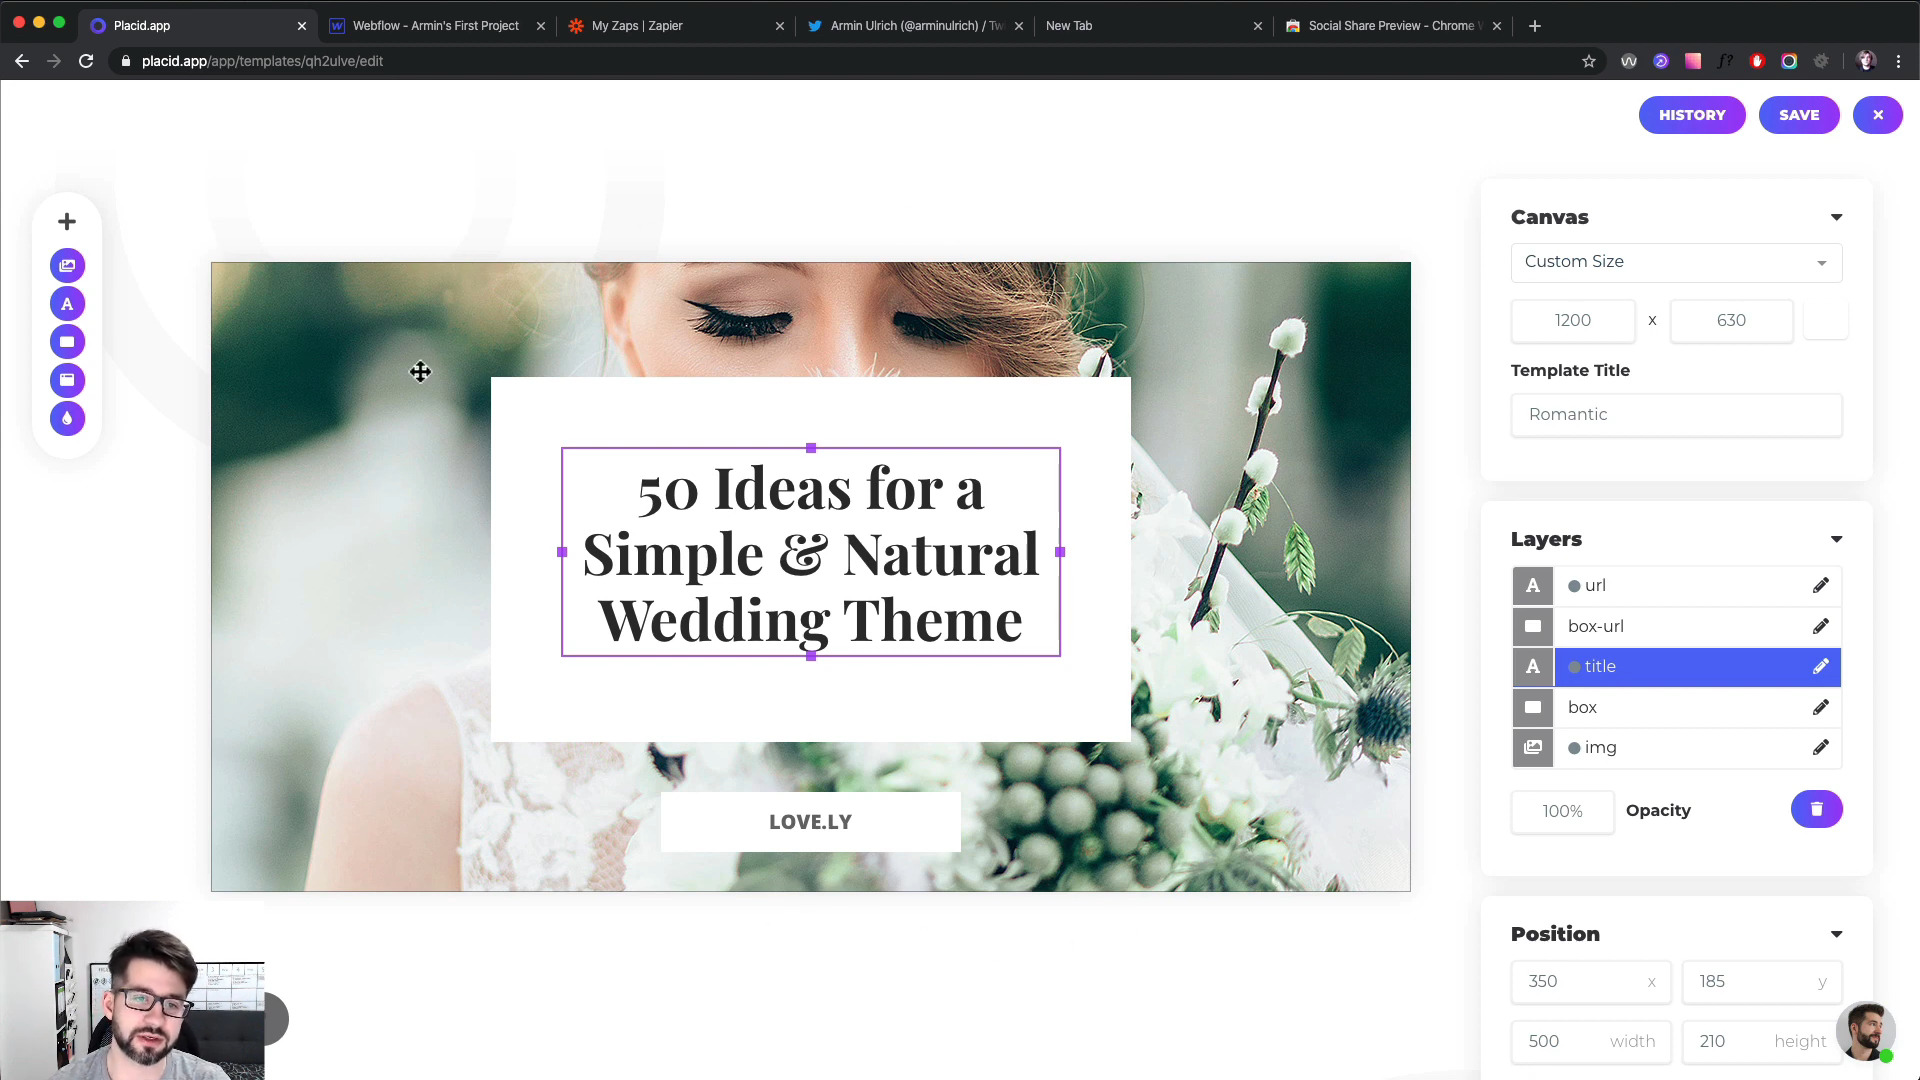 Video Tutorial Screenshot – Placid template in the editor